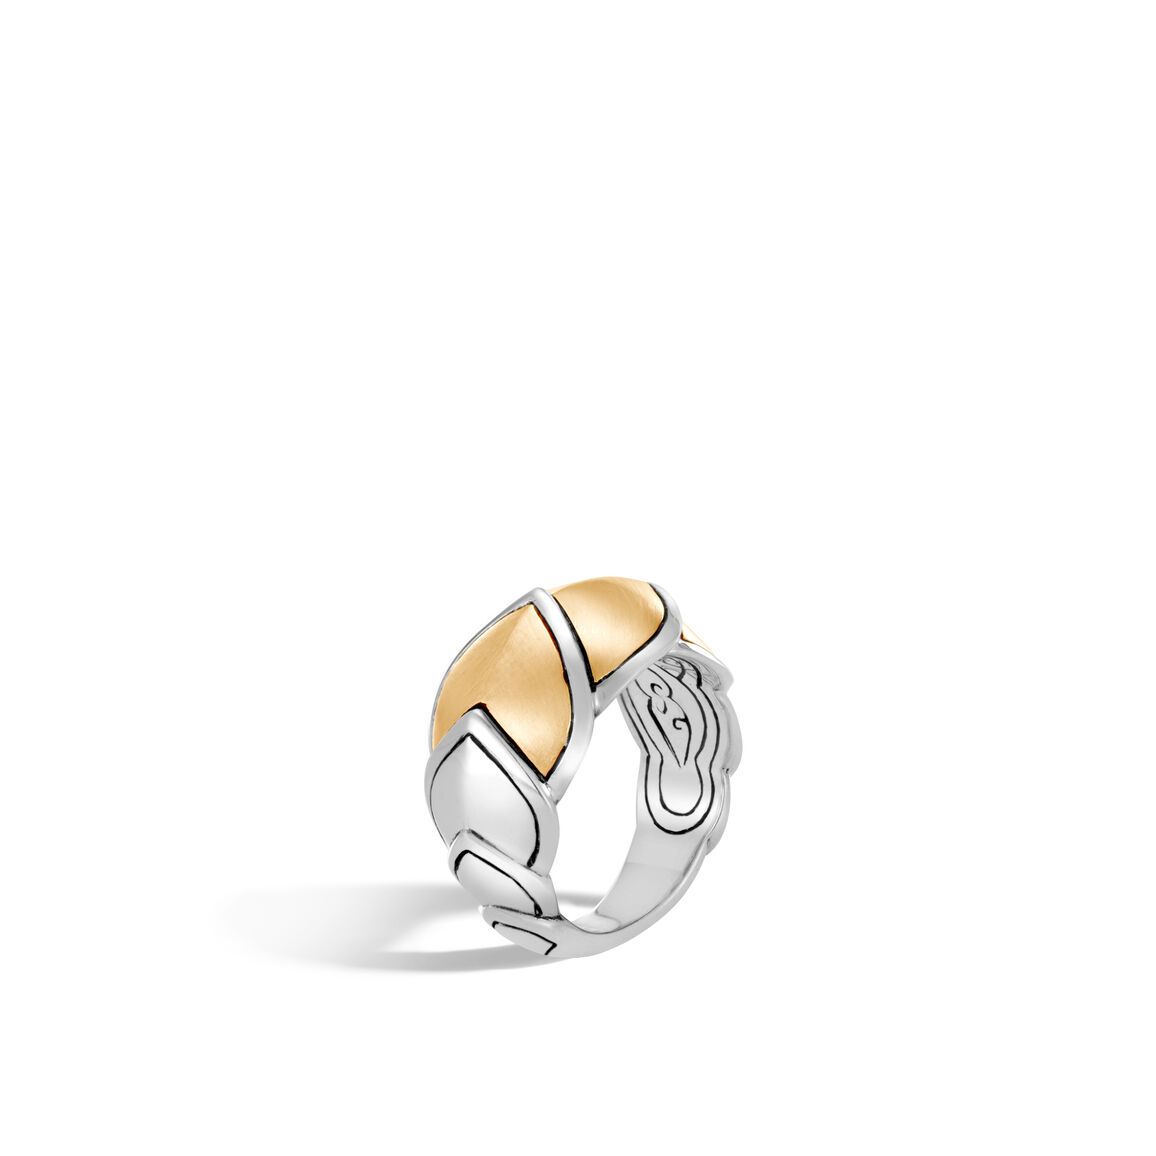 Legends Naga 15MM Ring in Silver and Brushed 18K Gold